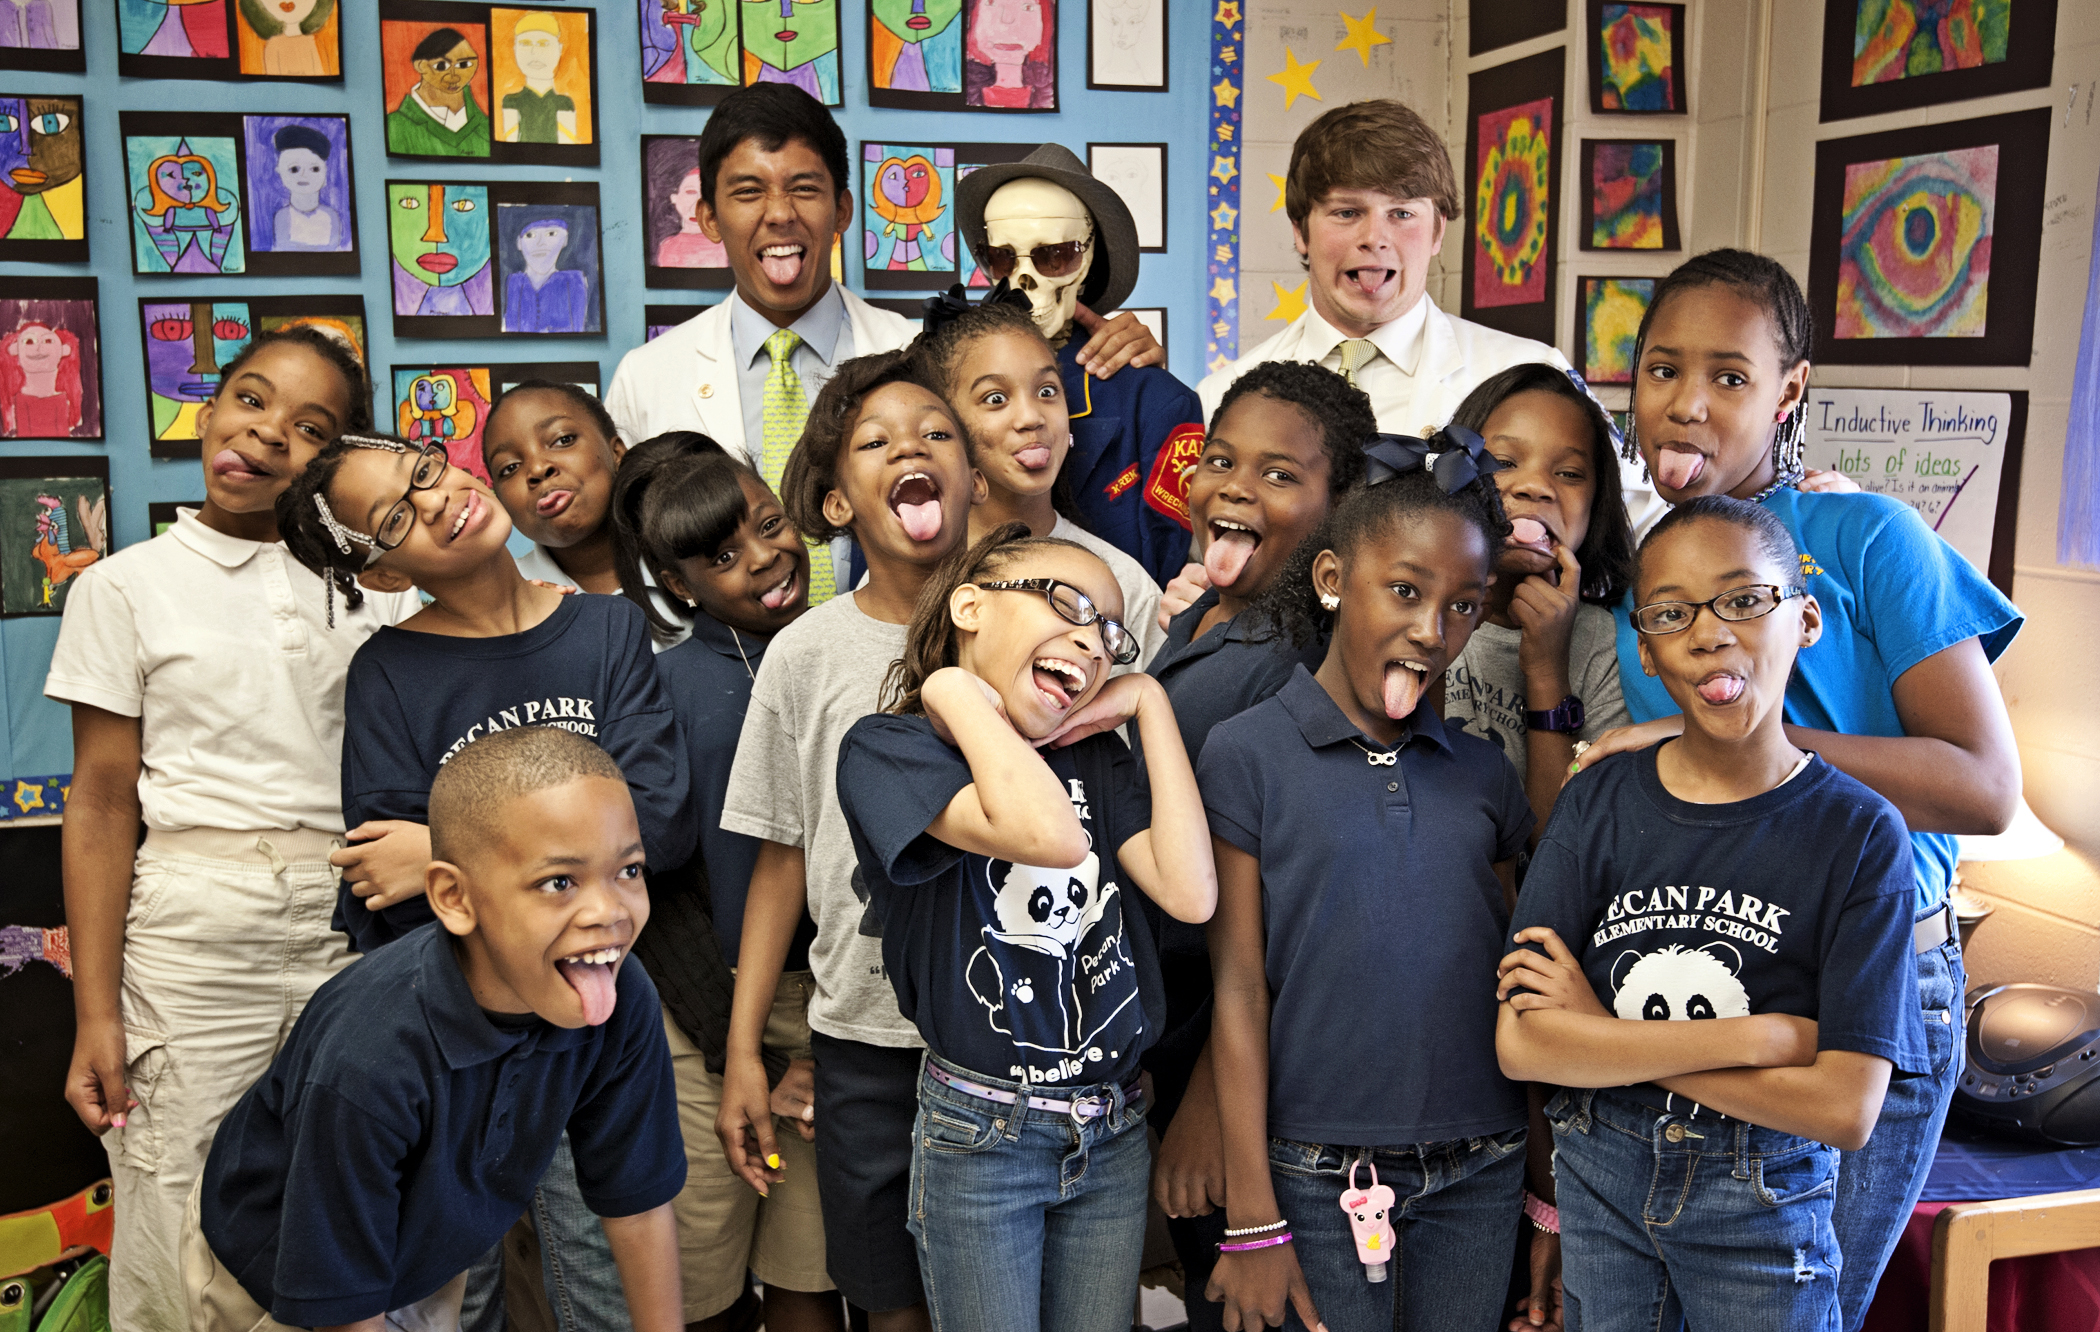 With Mikey Arceo, and Turner Brown, Pecan's 4th graders include First row: Nicolas McKee, Kirstin Lakes, Makedra McCoy, Adriana Cavitt  Second row: Phelicity Lett, Alondria Taylor, Madisen Moses, Percia Blair, Charity Ashford, Aisja Shirley, Sarahdrick Mitchell, Kynedi Nichols, Taniya Adams